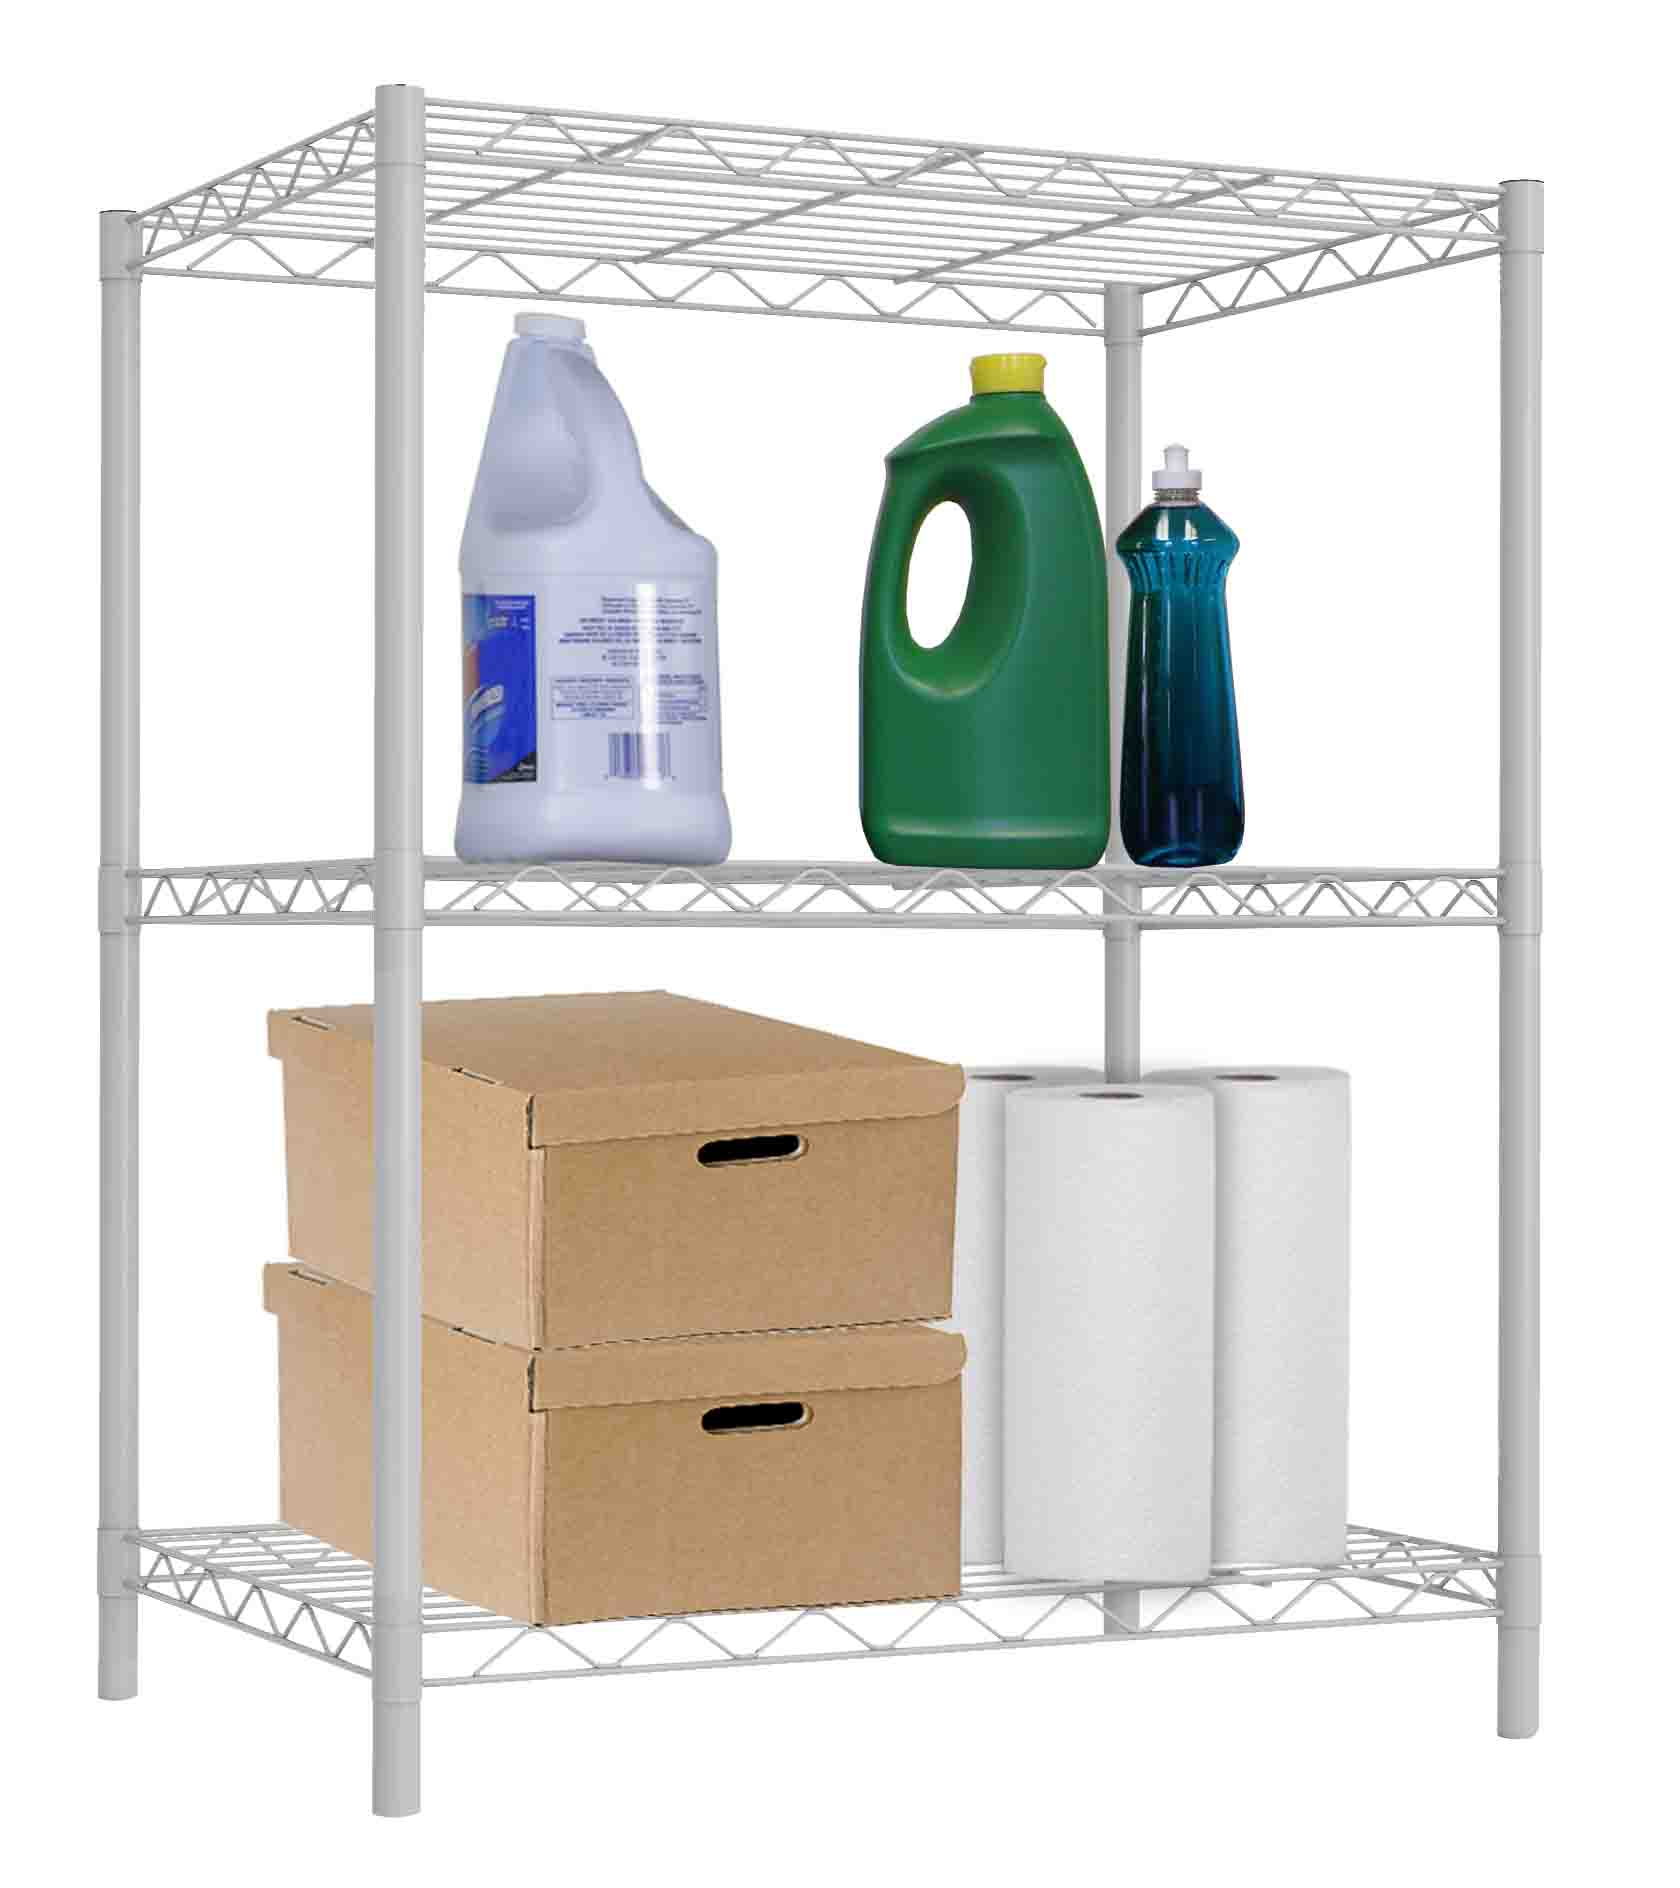 3 Tier Commercial Grade Steel Multi-Purpose Adjustable Wire Shelving Unit - White